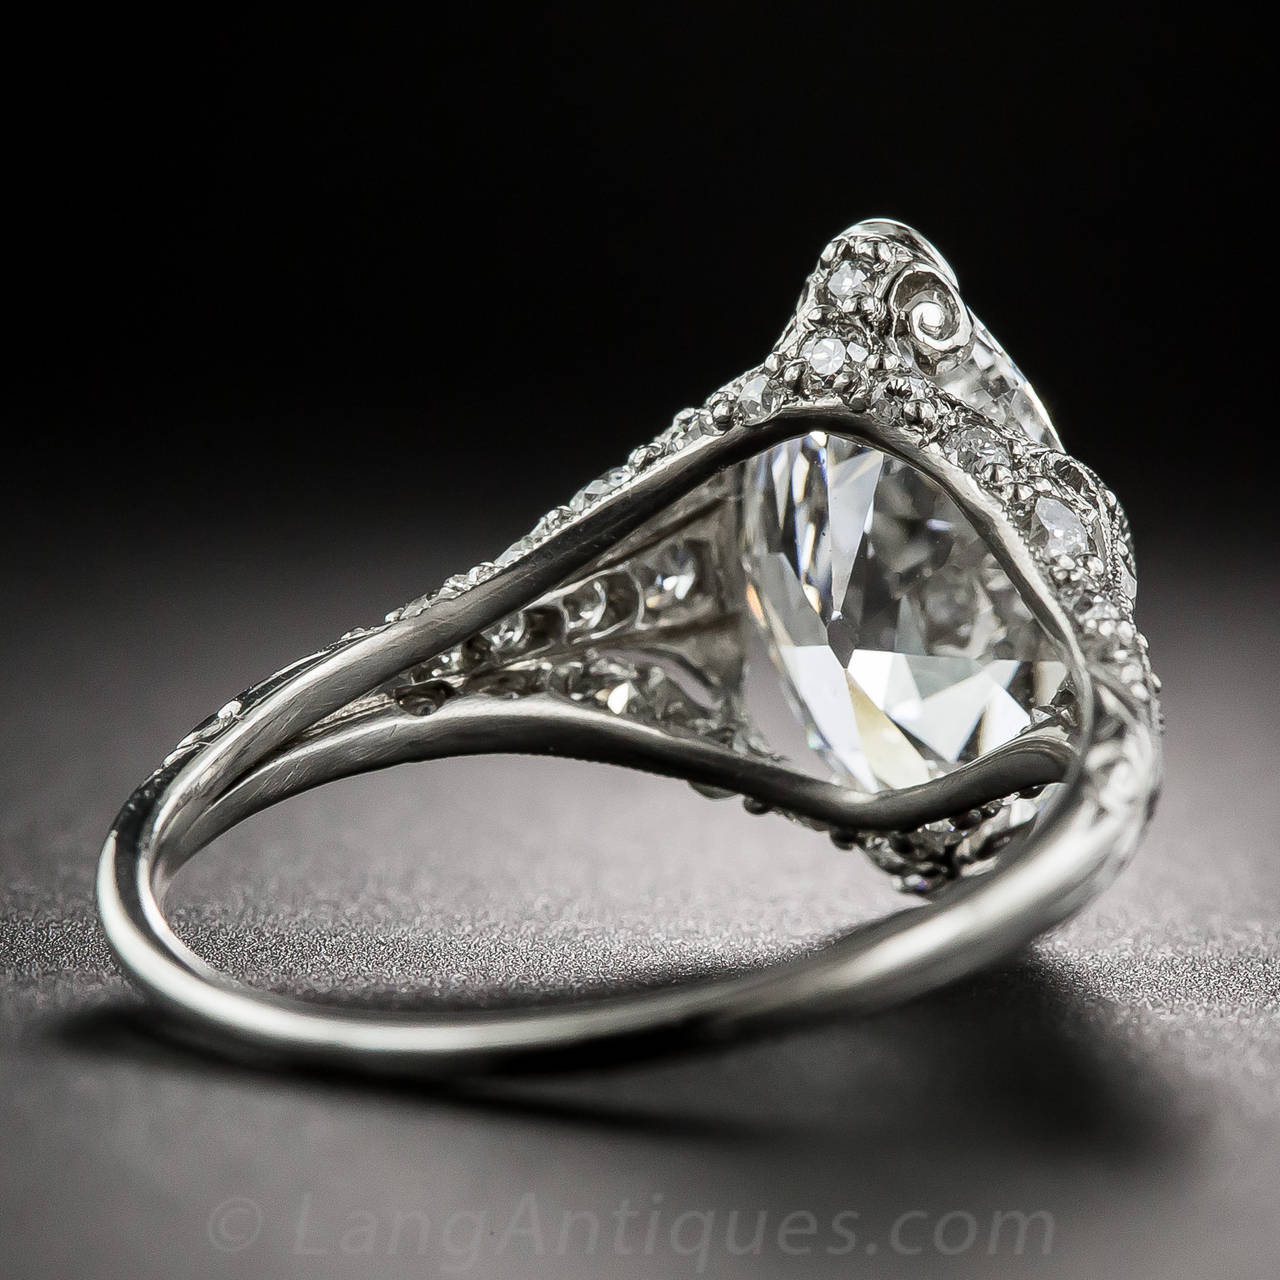 Women's Tiffany & Co. Edwardian 3.14 Carat Marquise Diamond Platinum Ring For Sale